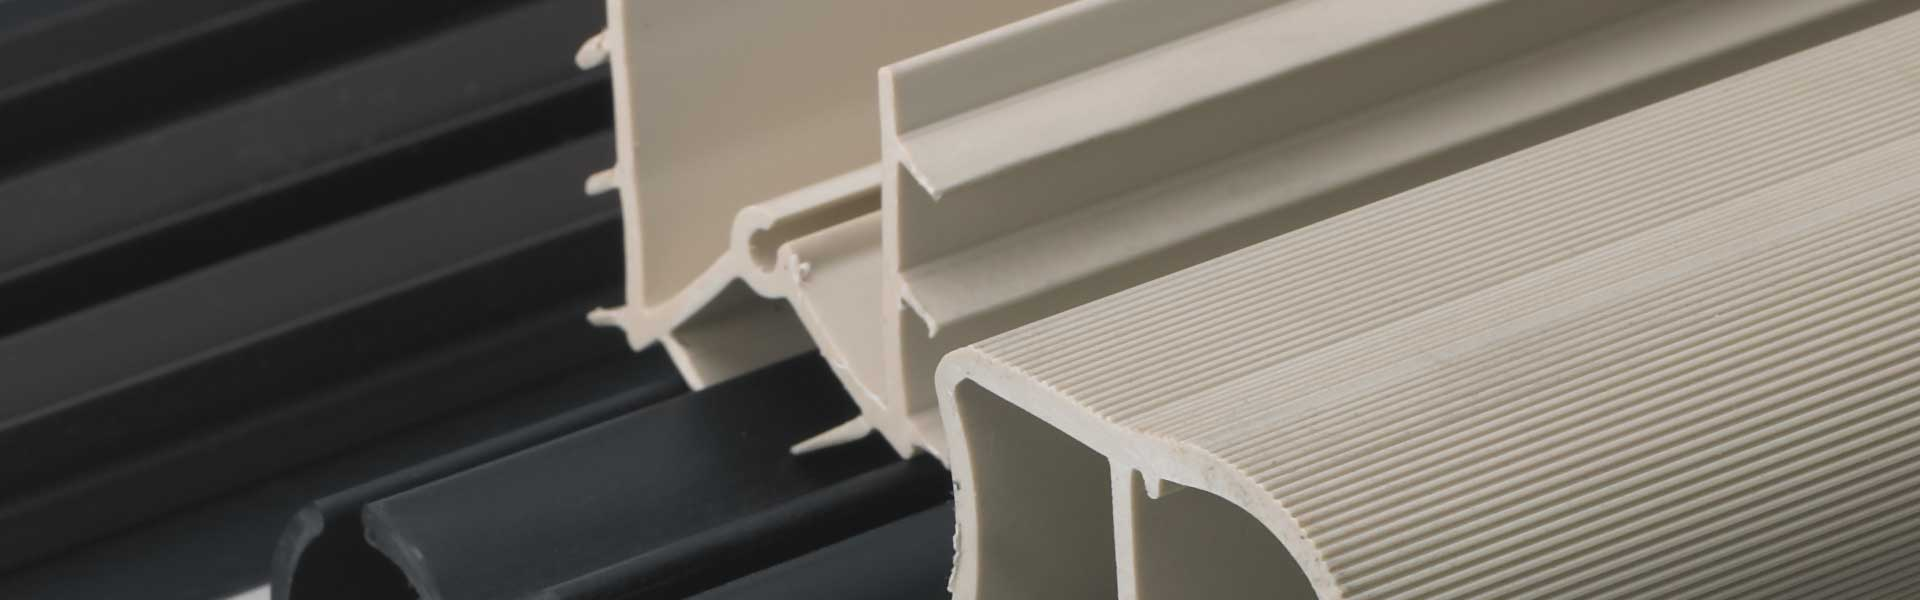 HDPE extrusions manufactured in Wisconsin